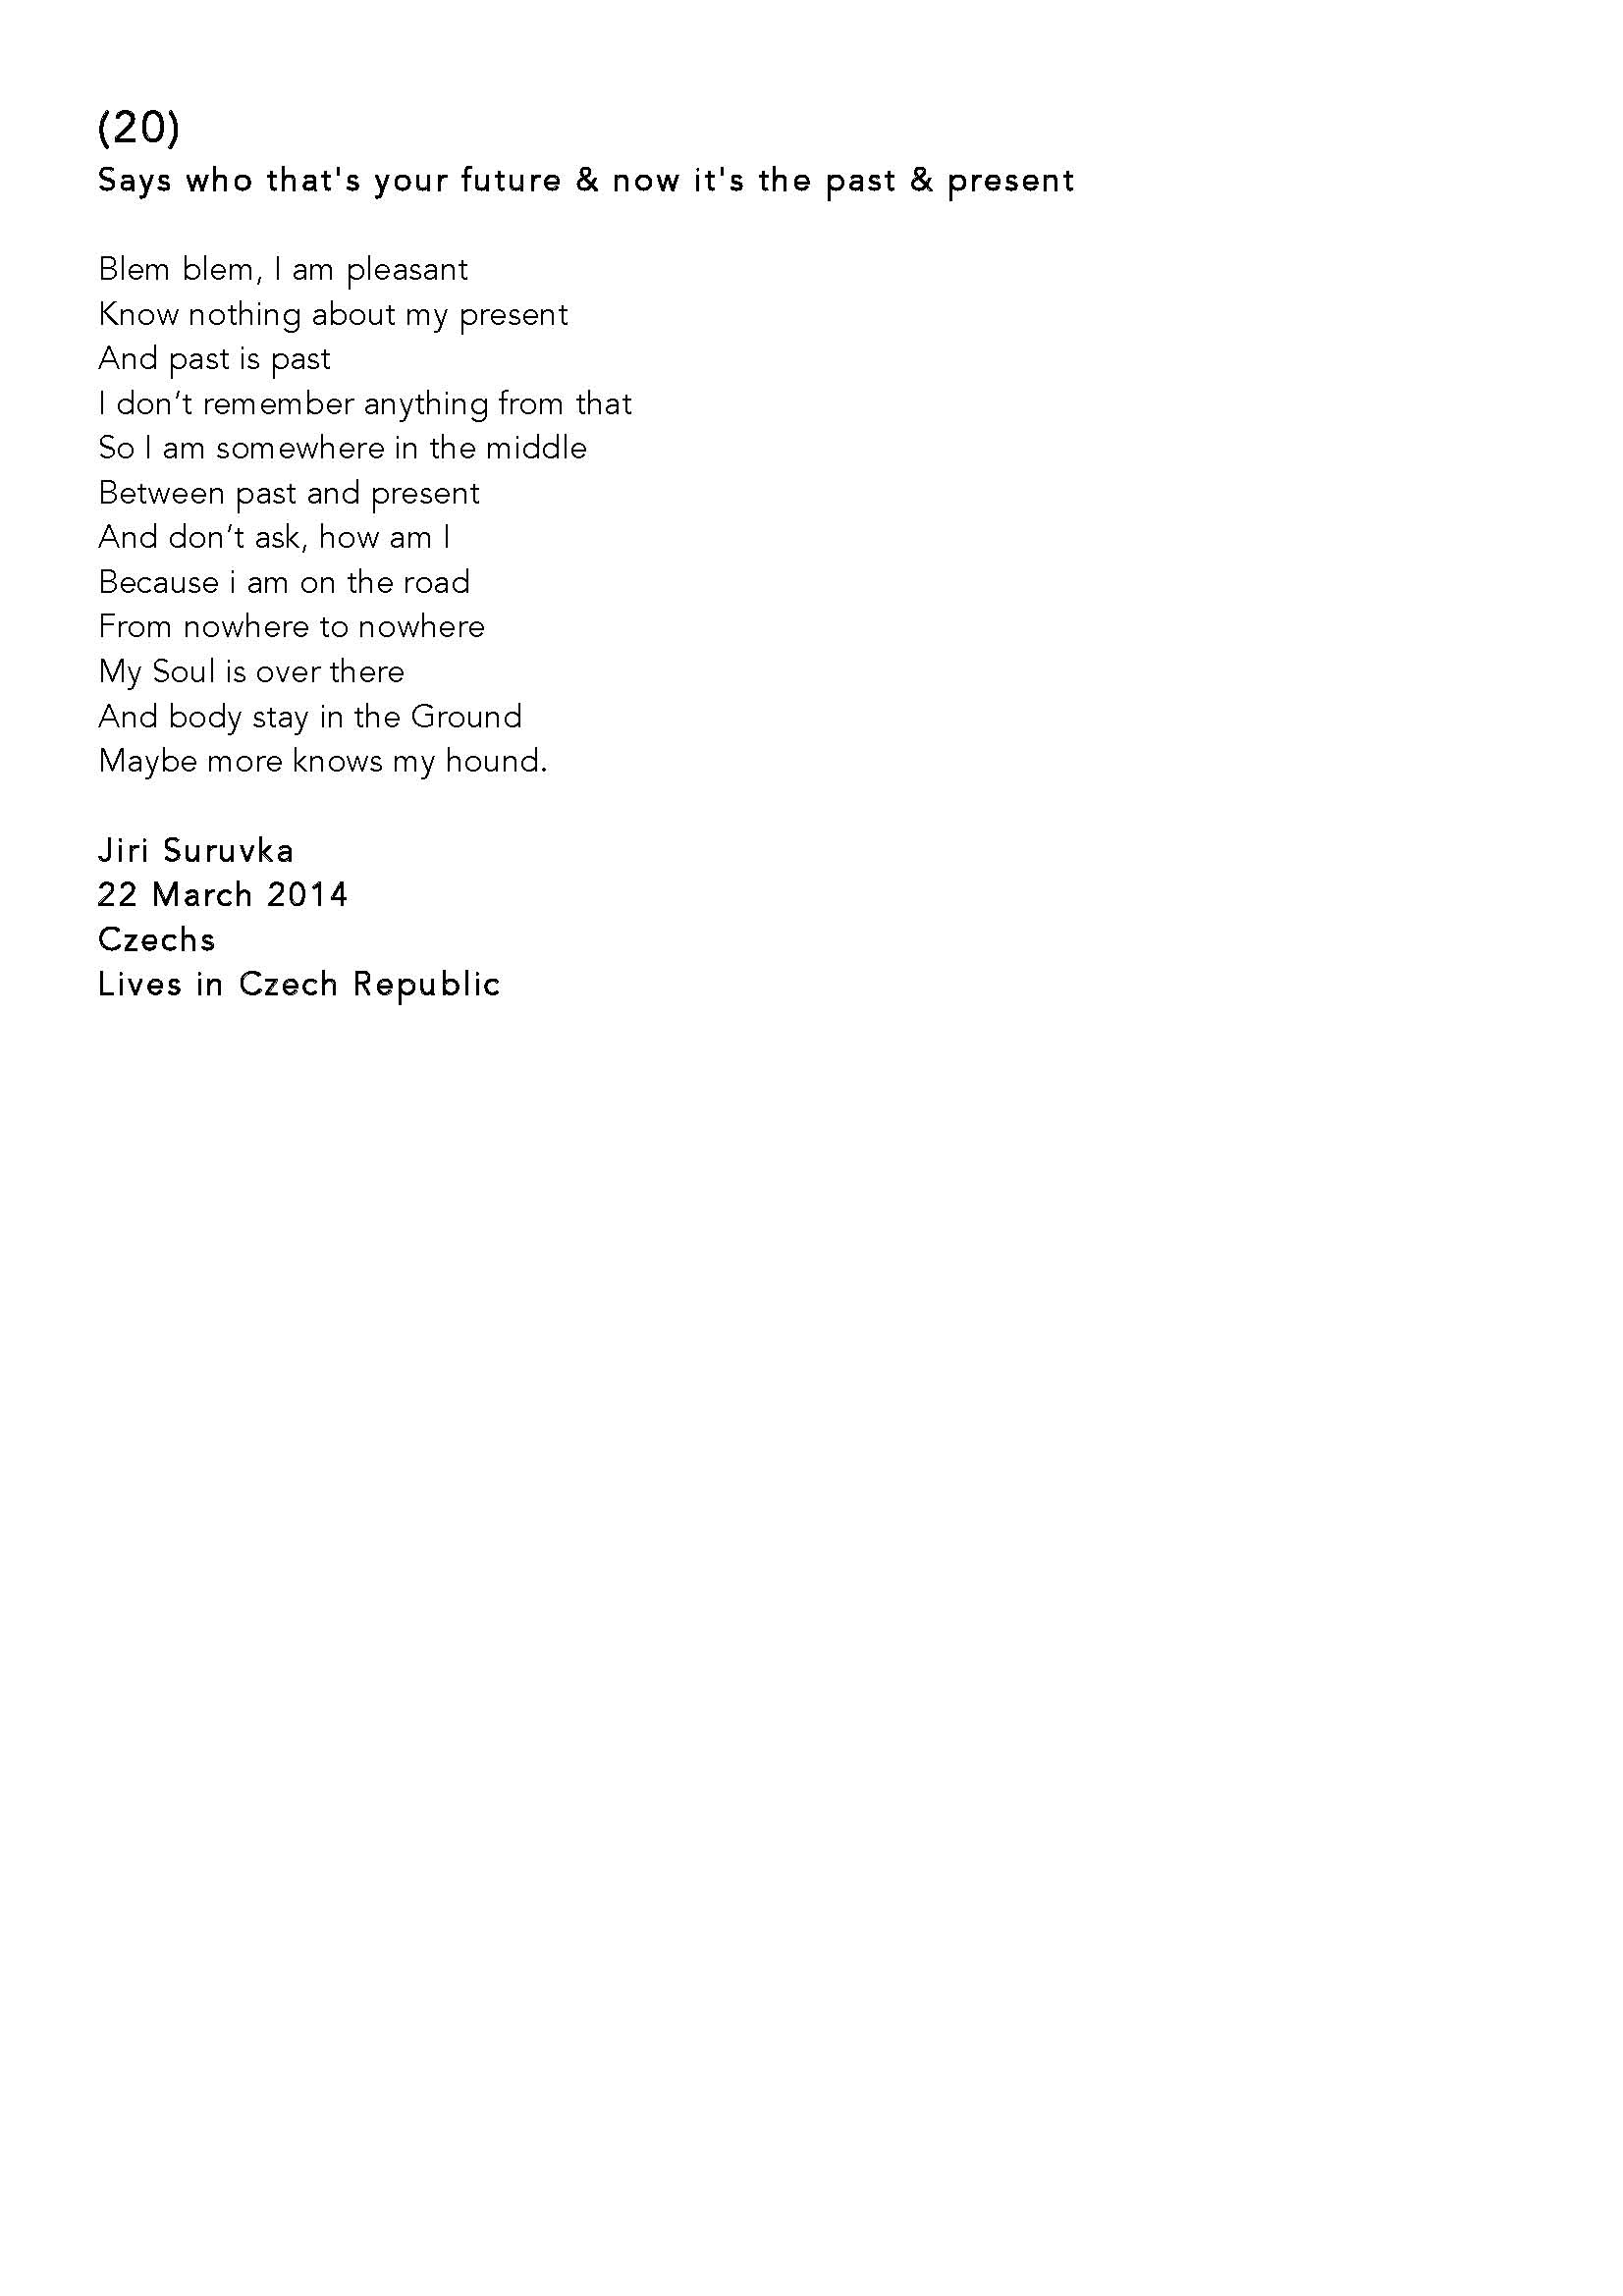 Poetry Collection - Everyone can Poetry_March 2014_Page_20.jpg